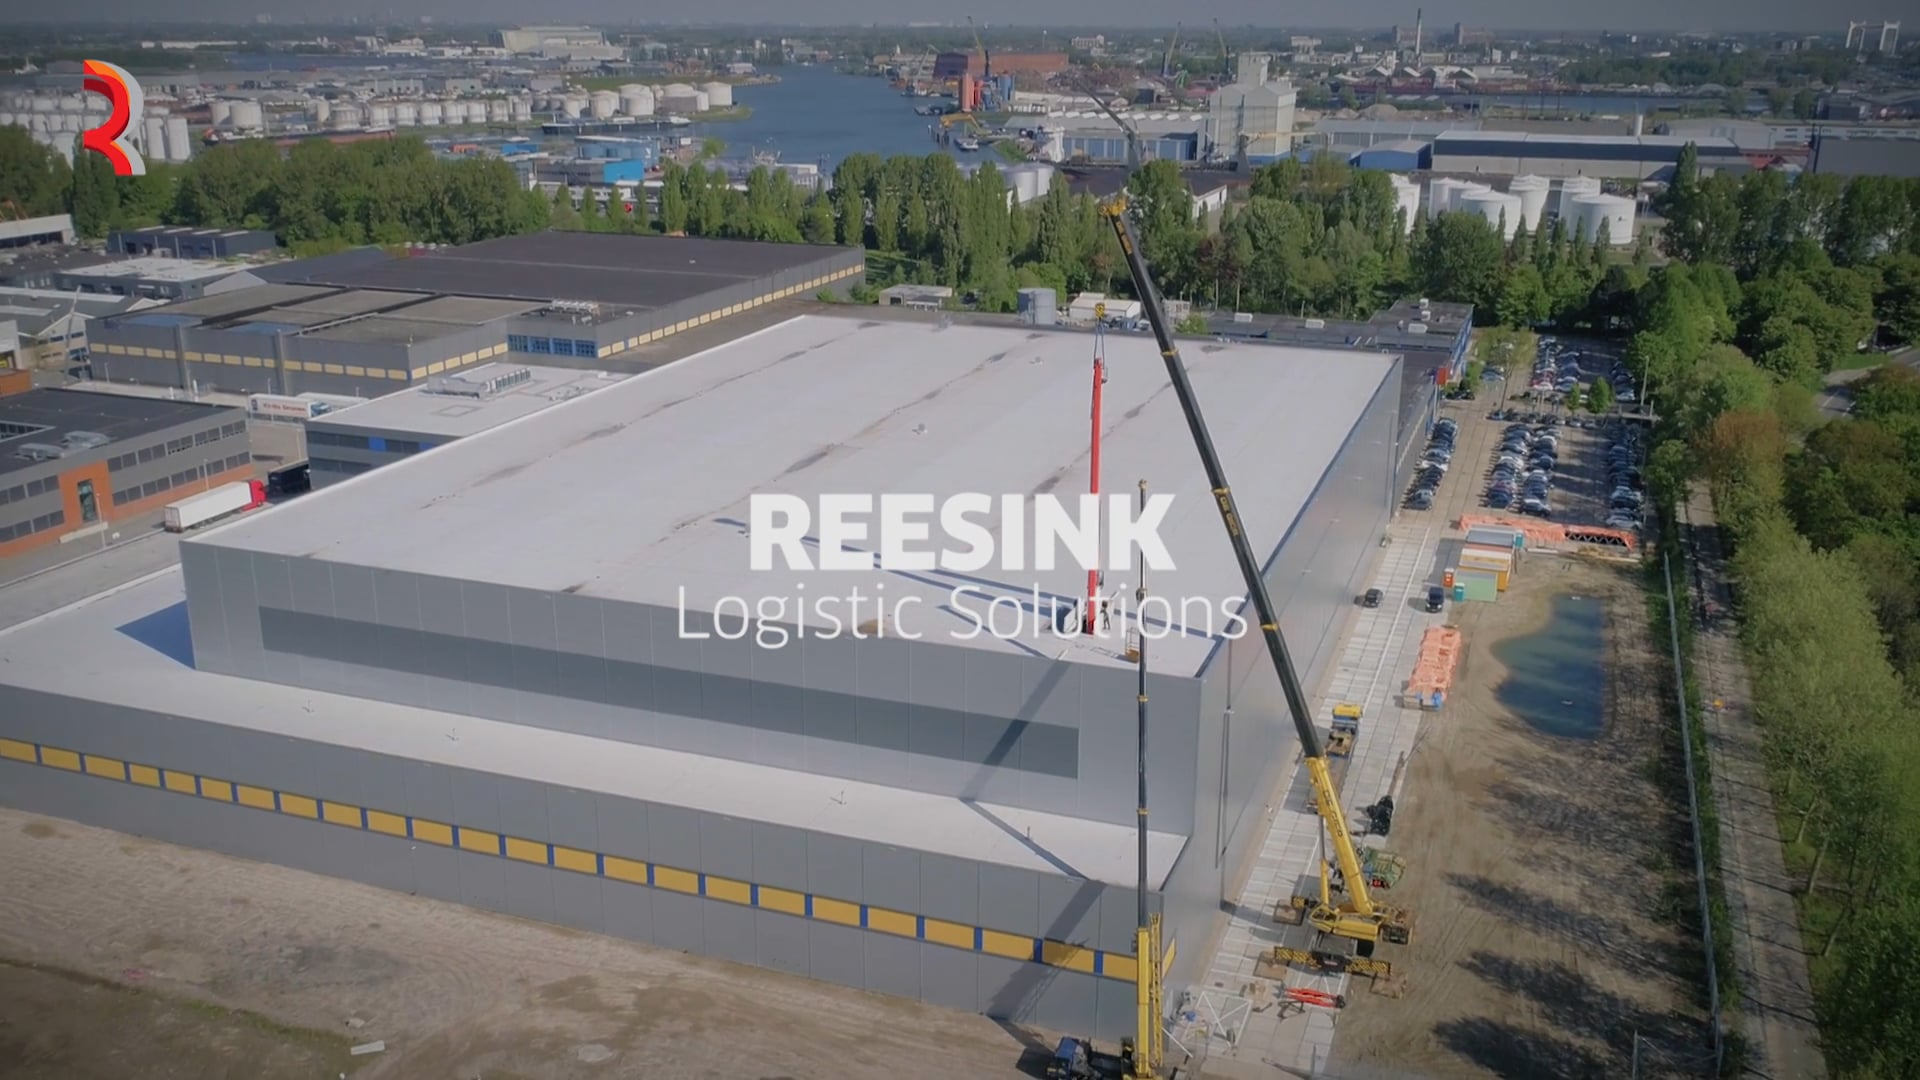 REESINK LOGISTIC SOLUTIONS